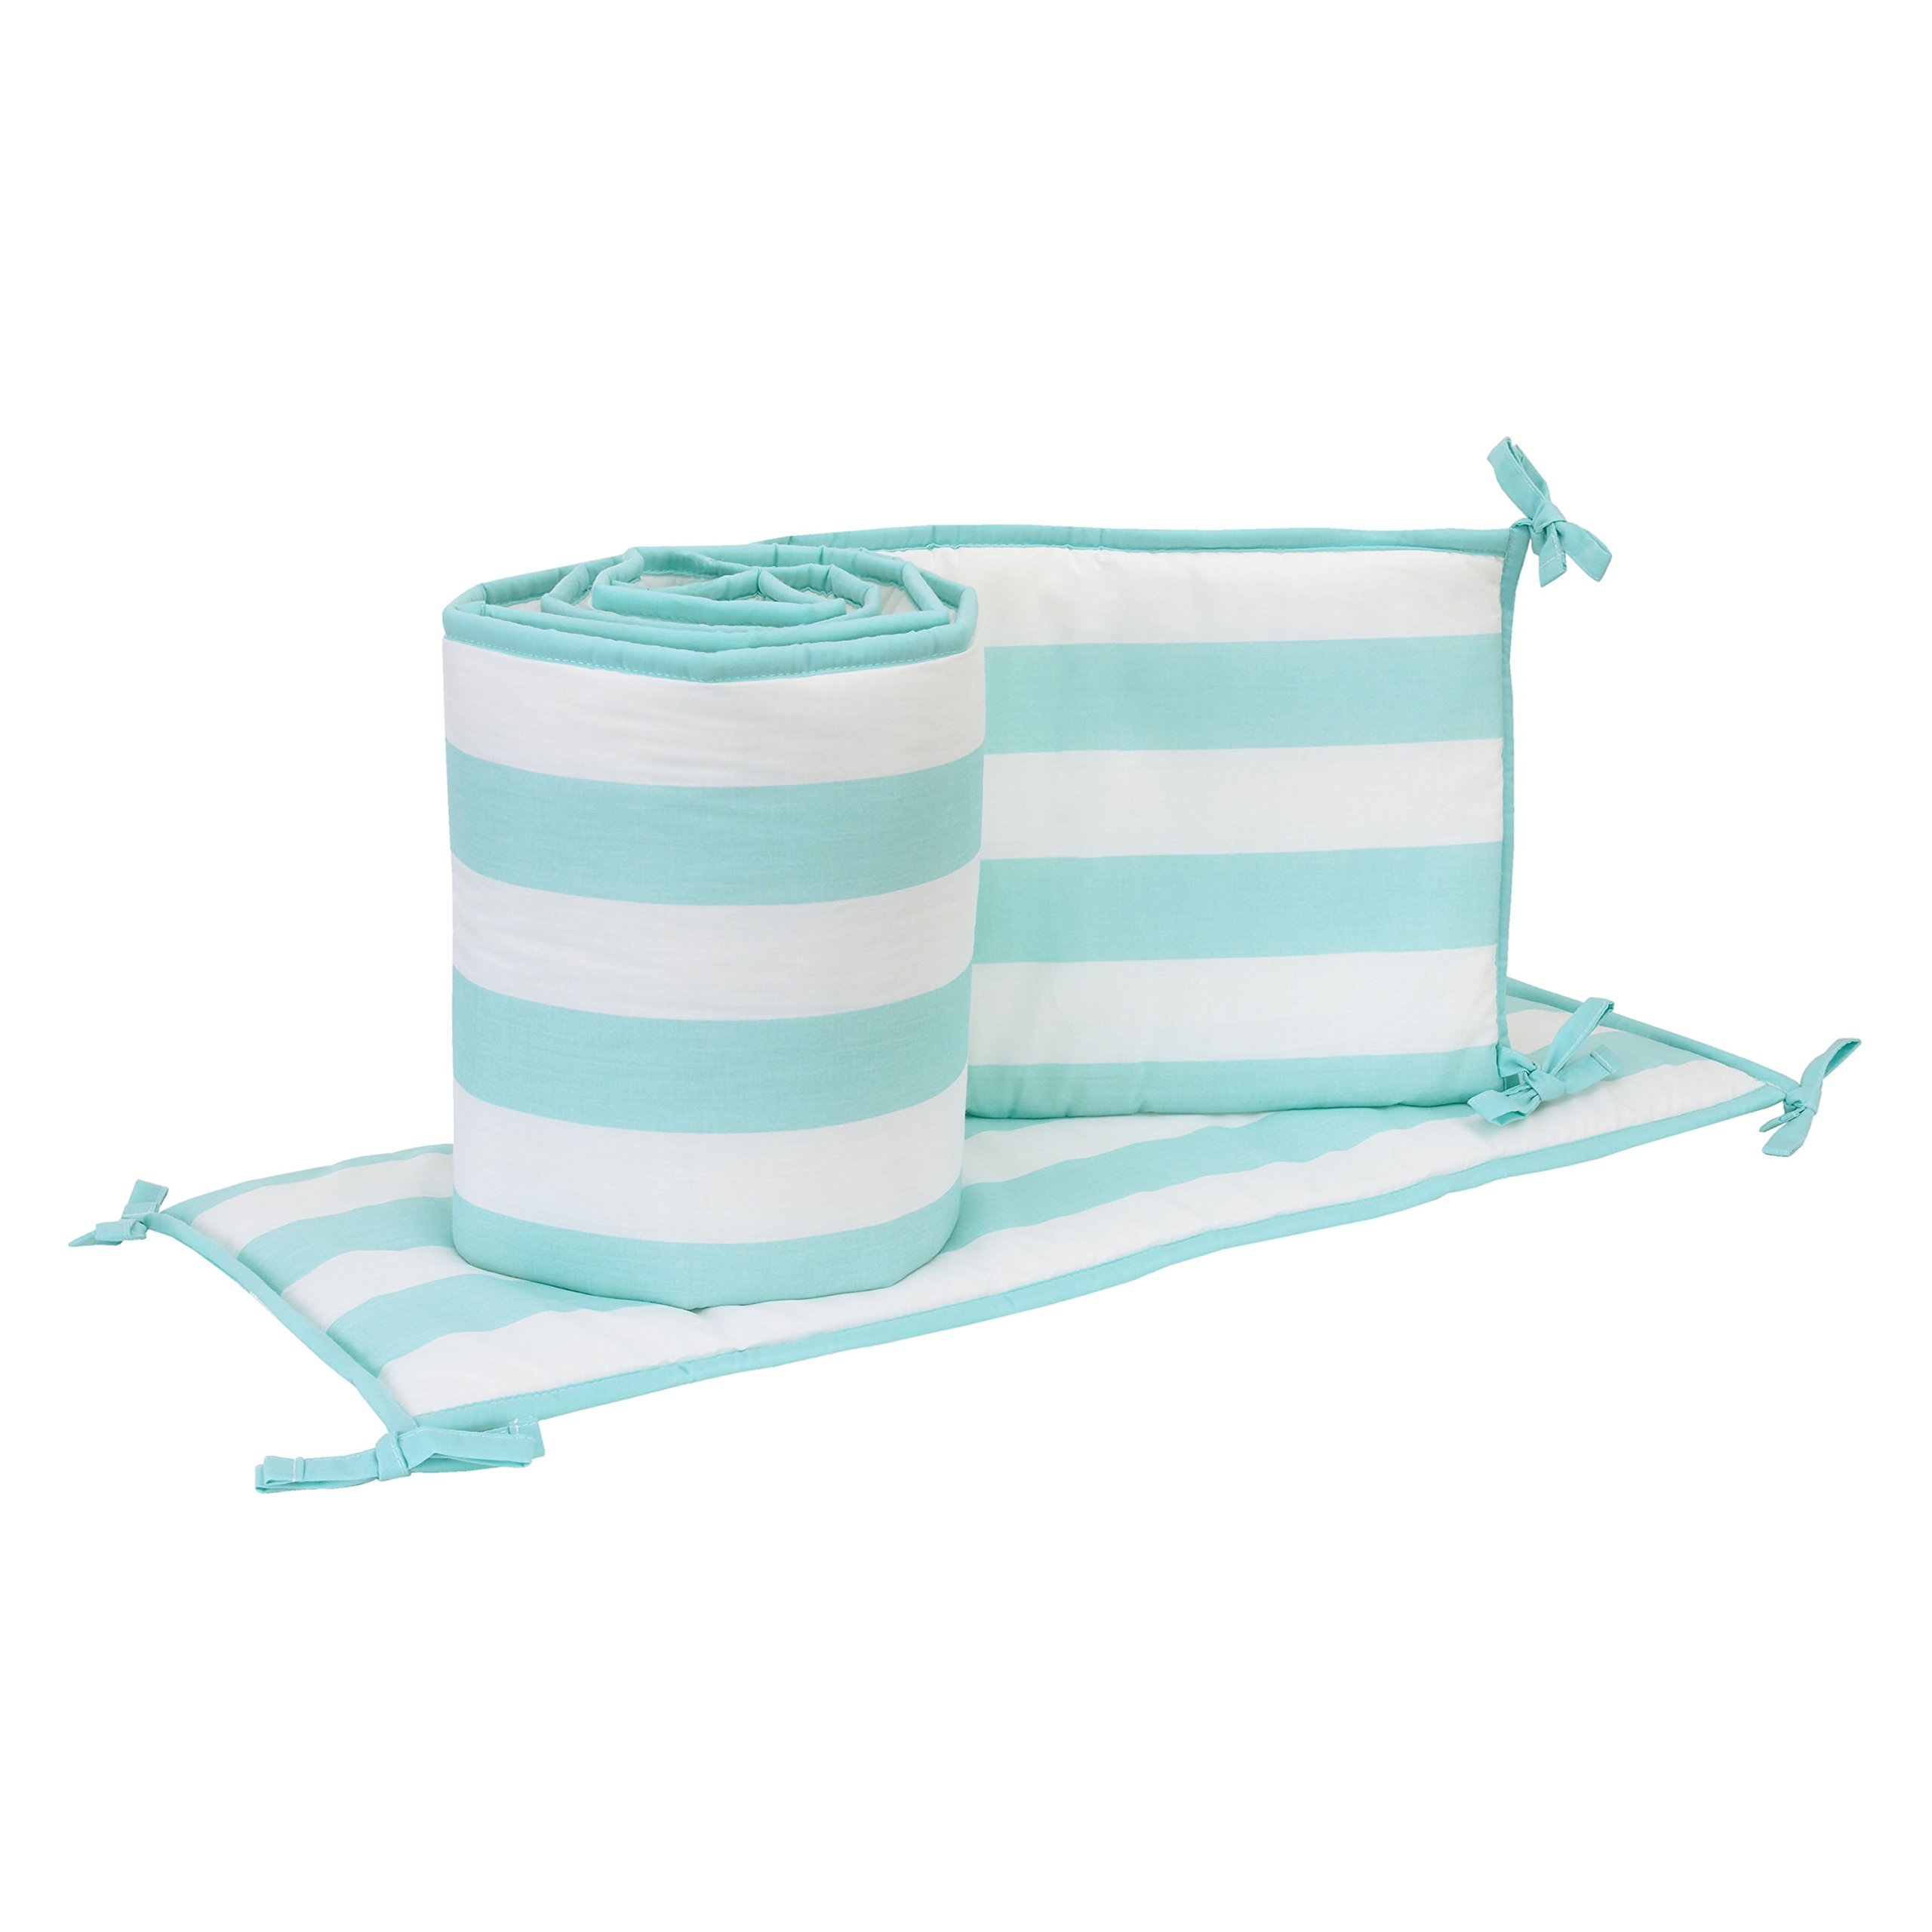 Little Love by NoJo Teal Stripe Print 4 Piece Nursery Crib Bumper, Teal/White